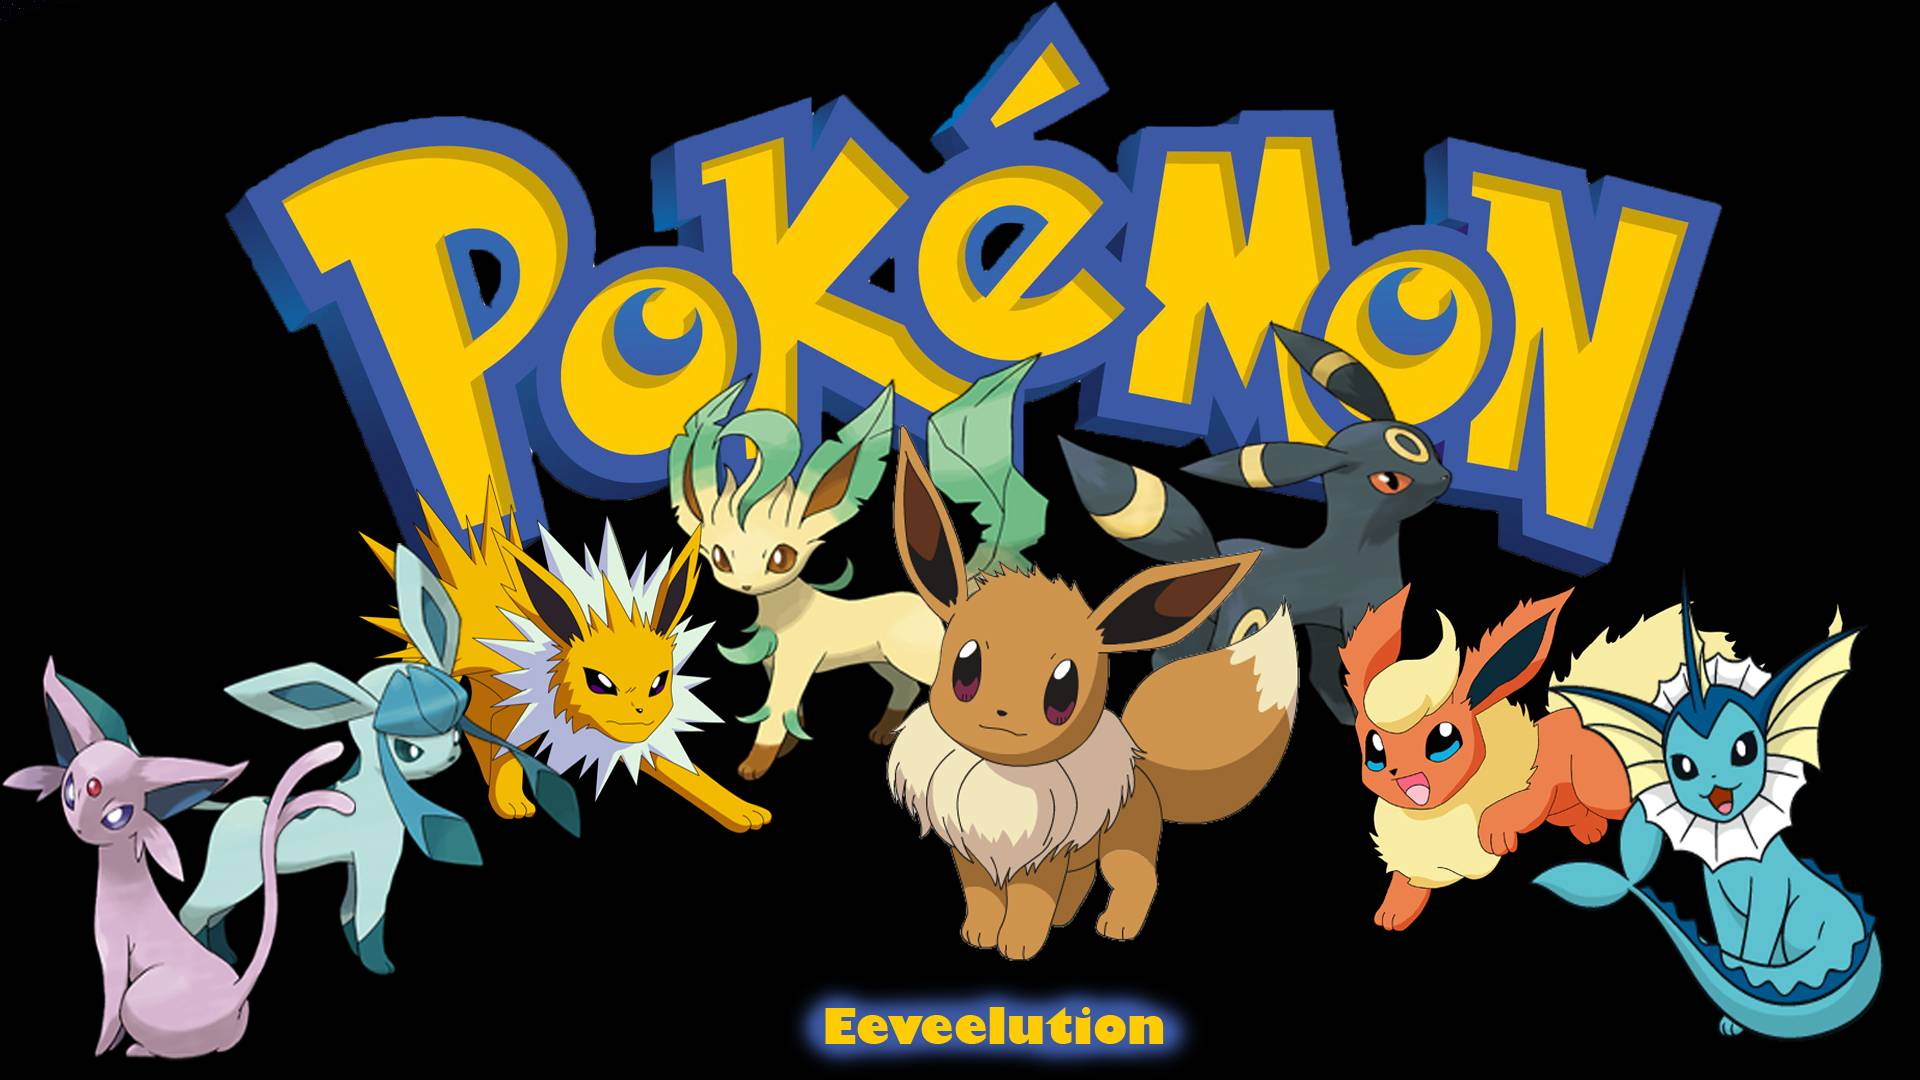 Best-images-about-Eevee-on-Pinterest-Valentine-day-cards-1920×1080-Eevee-evolutions-wallpaper-wpc5802783